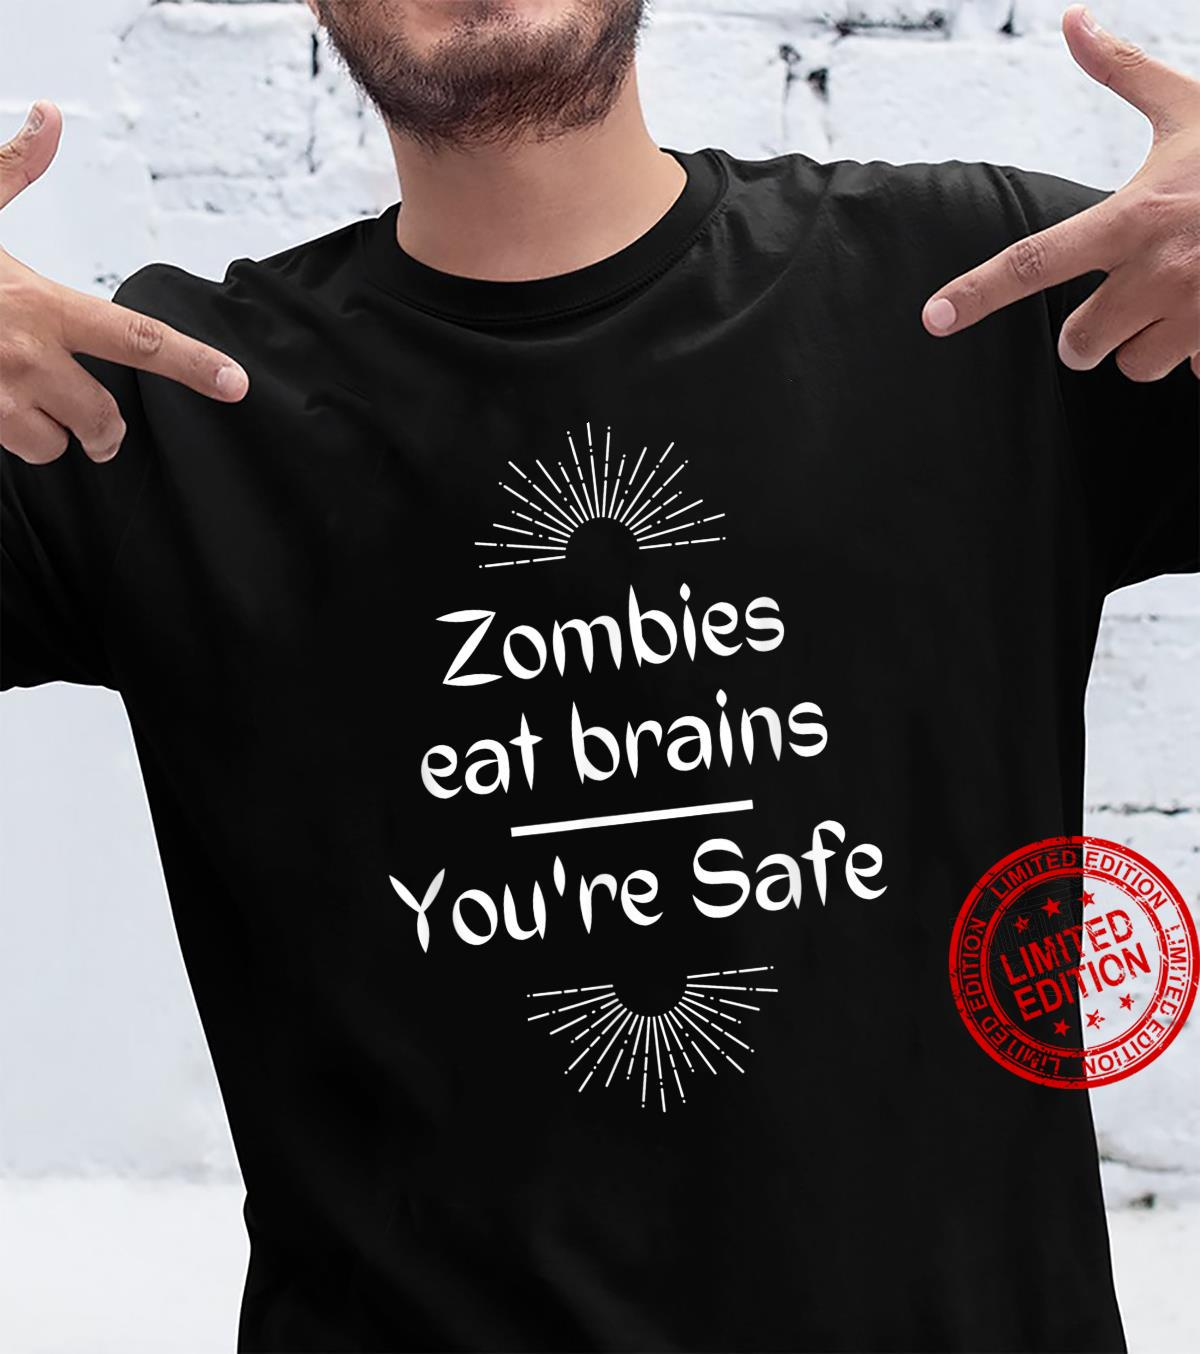 Zombies Eat Brains, You're Safe Shirt